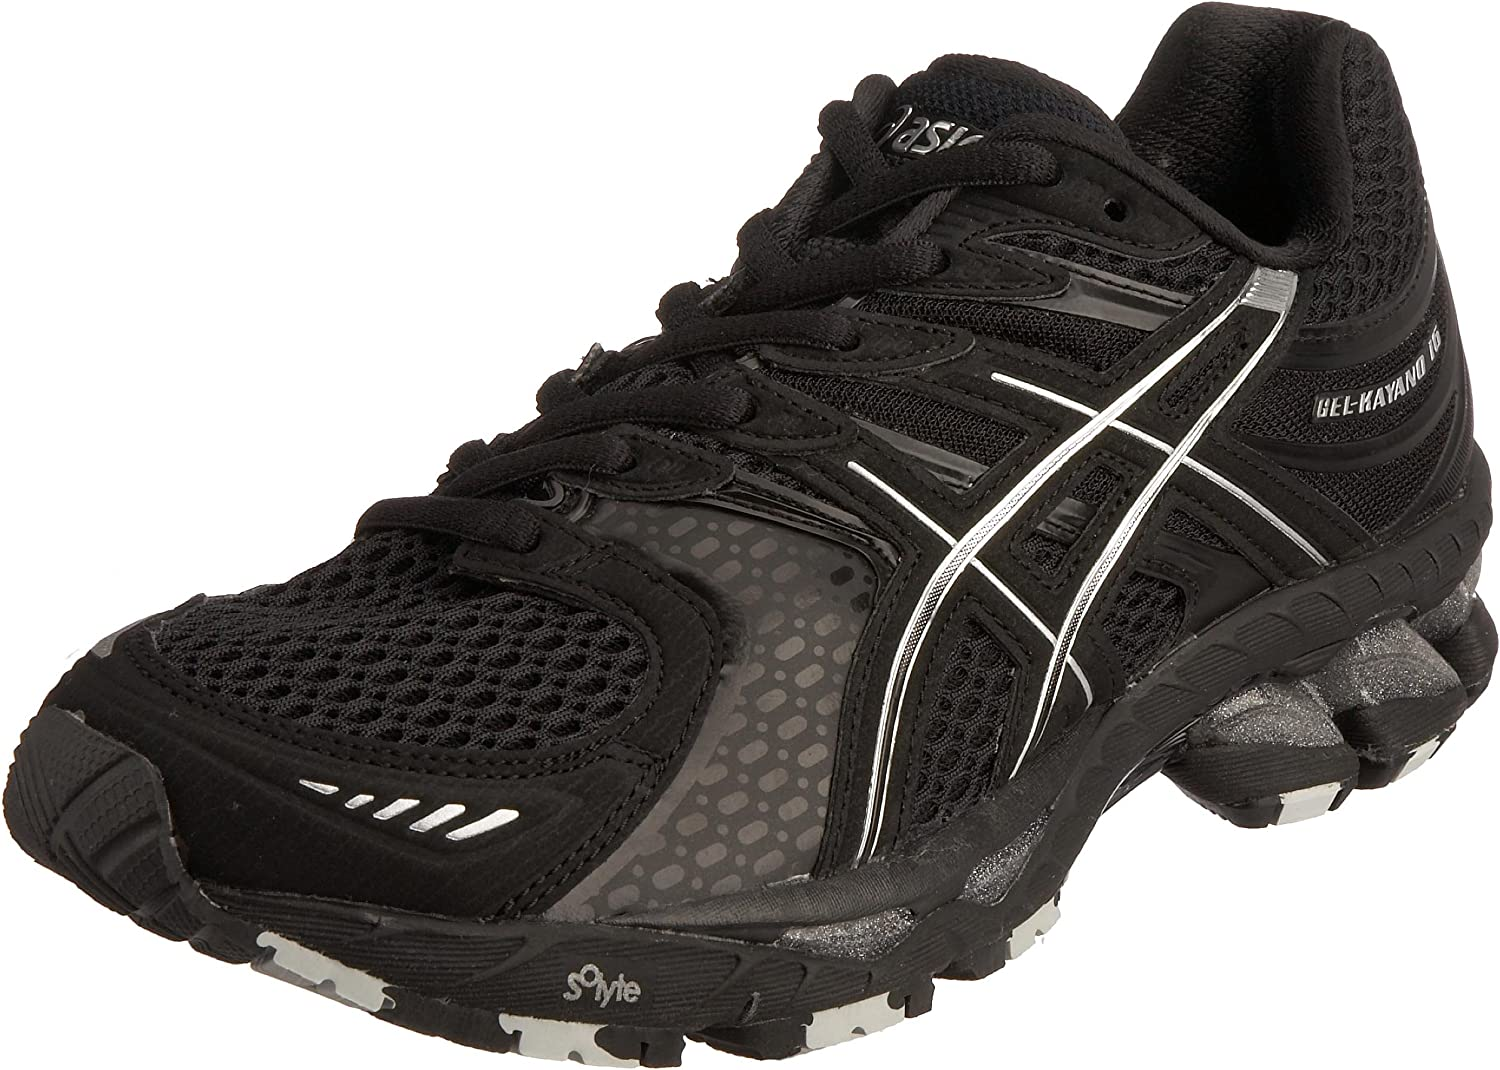 Asics Gel Kayano 16 Zapatilla de Running, Color Negro, Talla 38 EU: Amazon.es: Zapatos y complementos